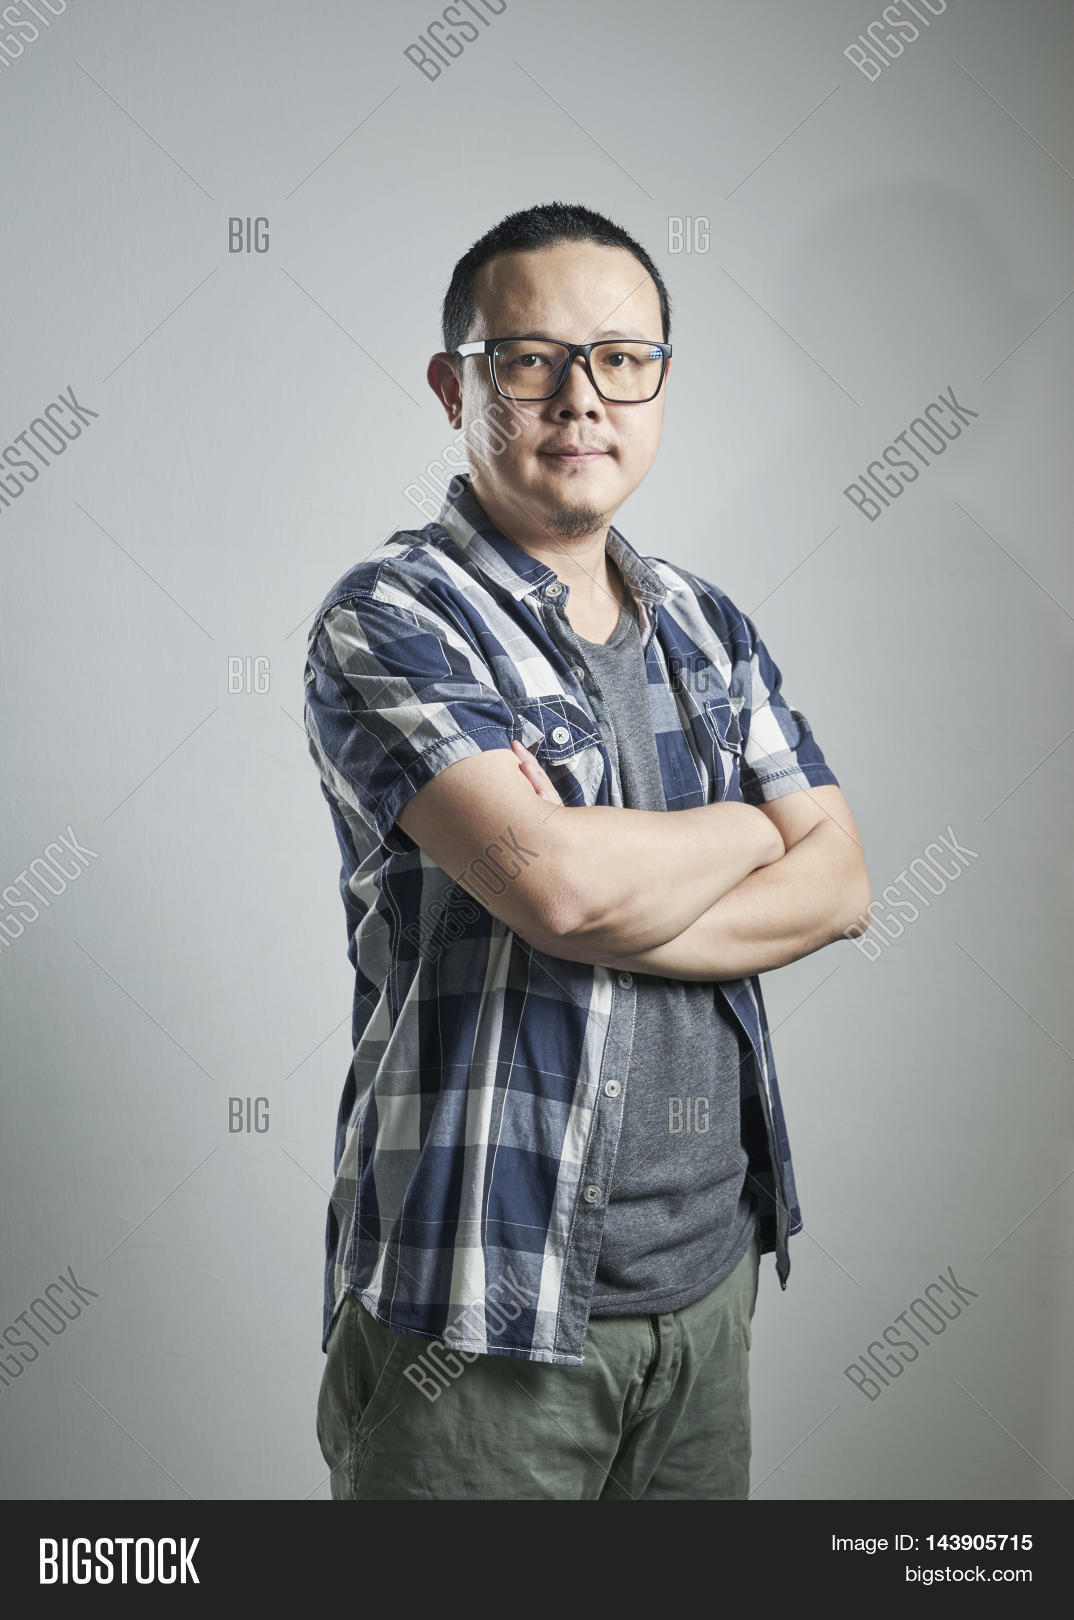 362ba5efc Portrait of happy single mature 40s Asian man in casual arms crossed  smiling and standing over